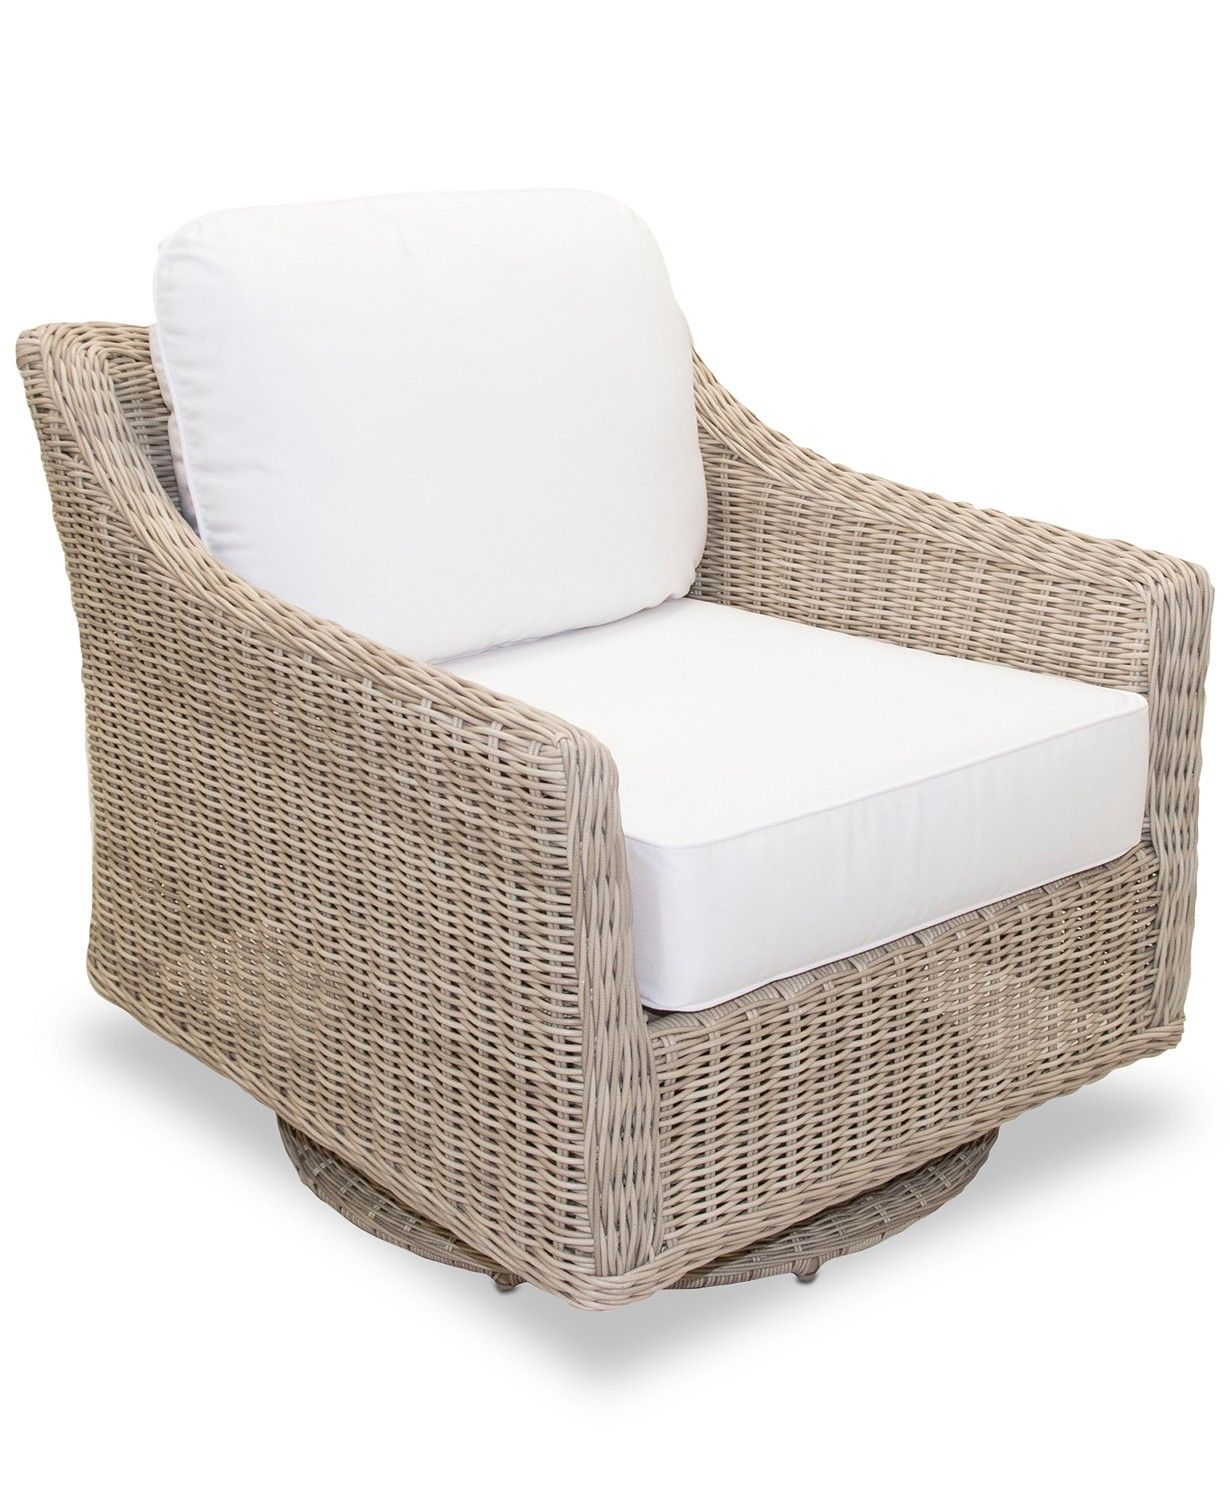 beige outdoor seat cushions on pin by ann moro on patio in 2021 beige outdoor furniture outdoor swivel chair sunbrella cushions outdoor swivel chair